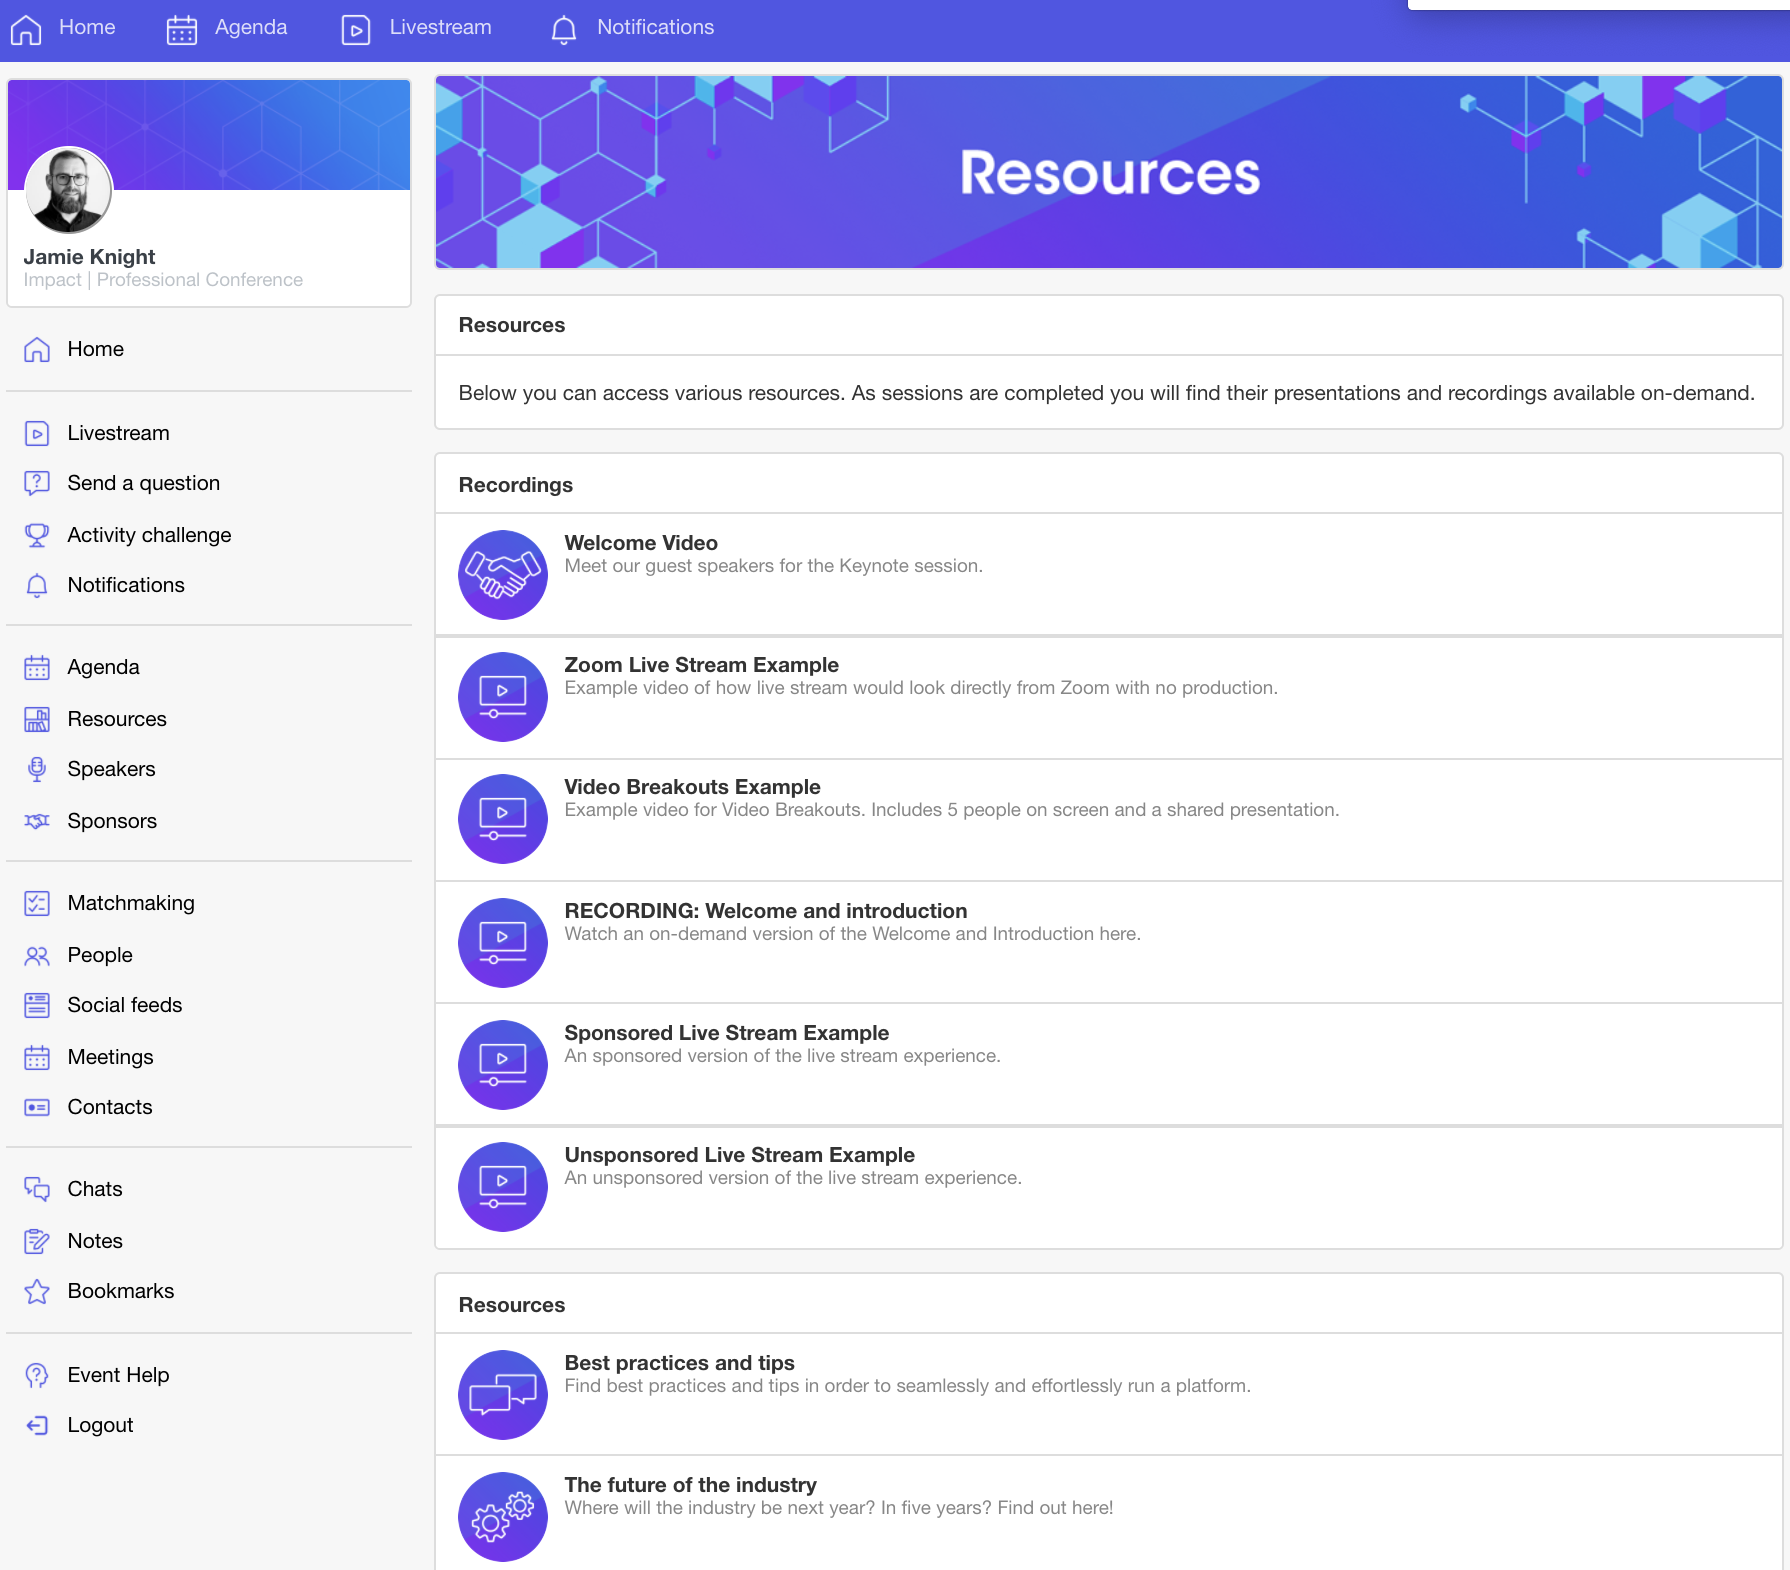 Resources_page.png